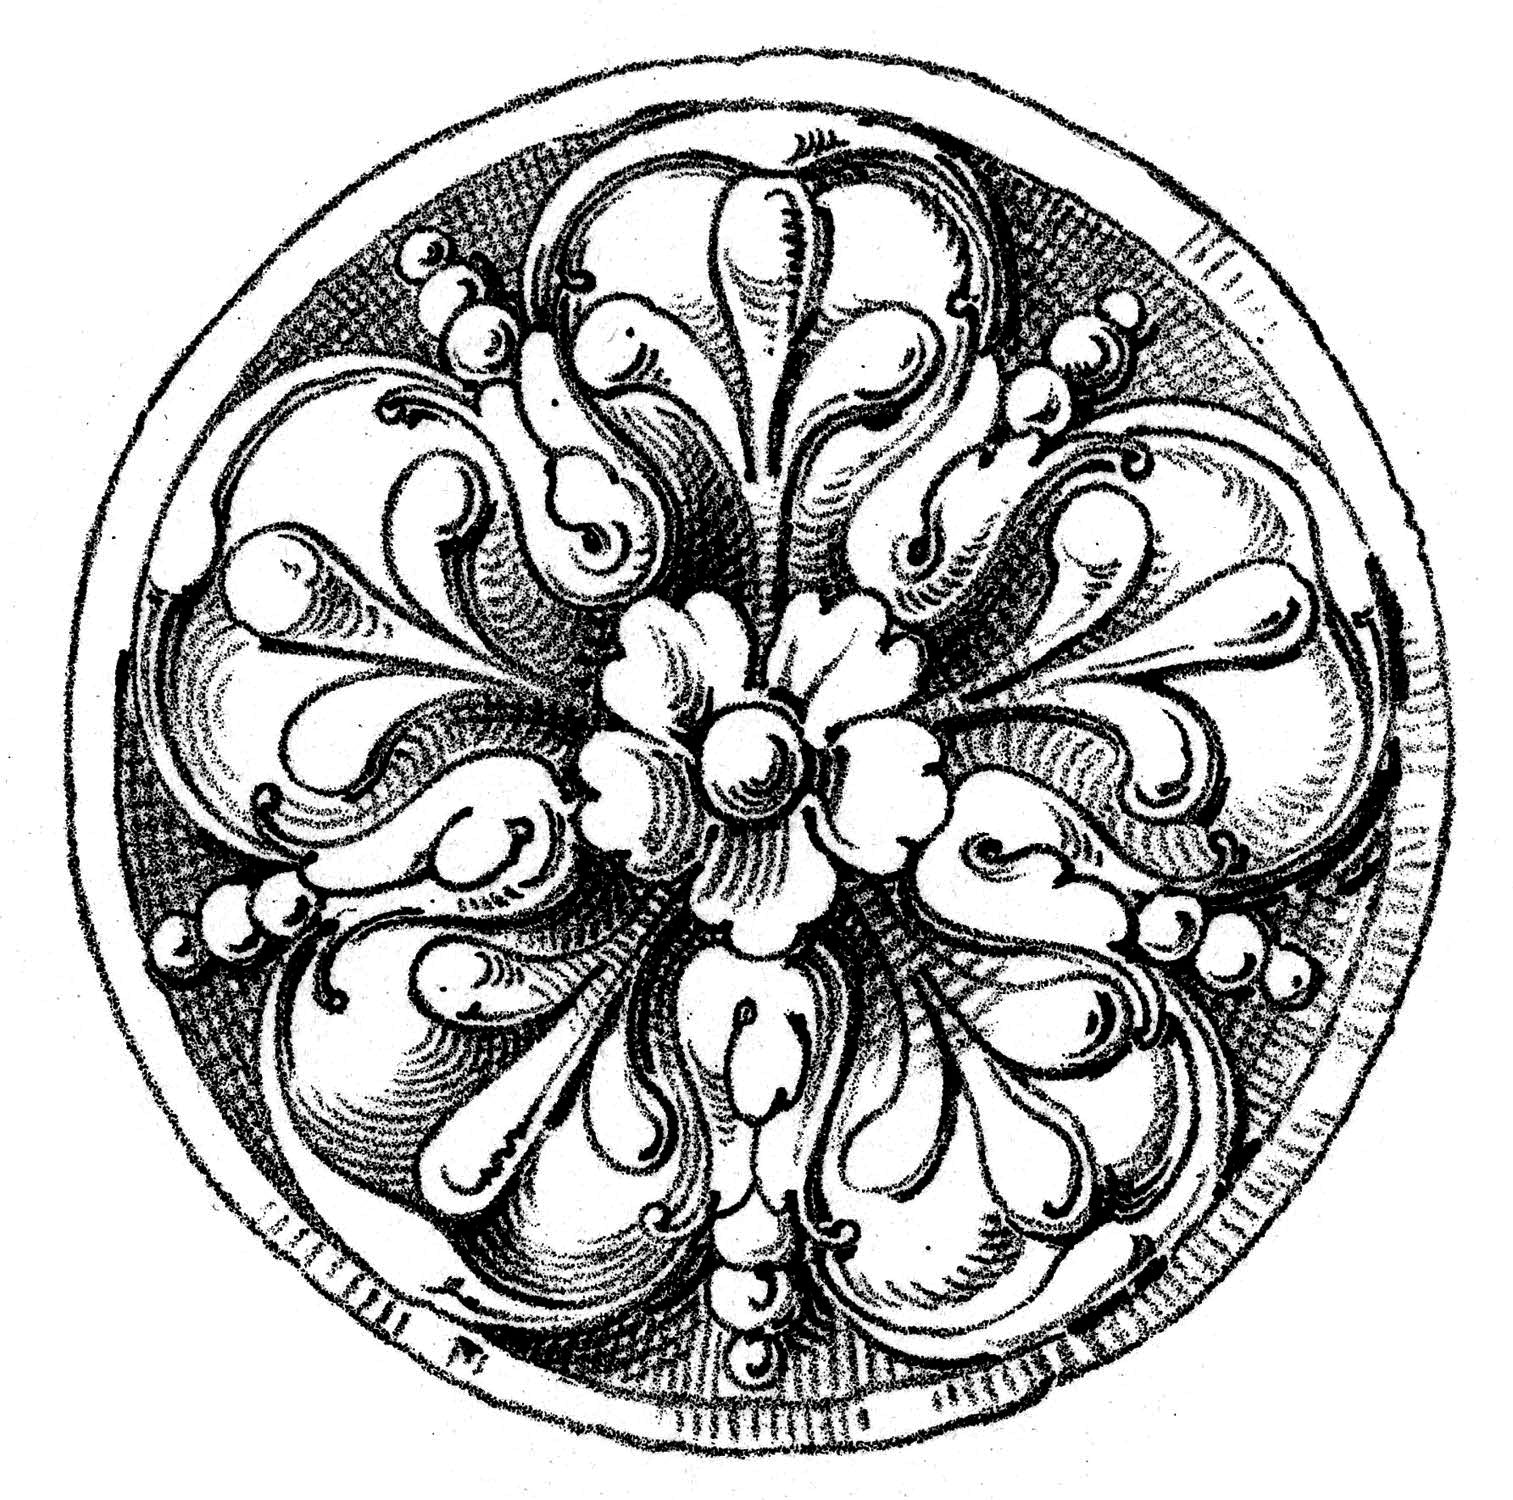 black and white sketch of a round or circular rosette design for brockwell incorporated's illustrated glossary of architectural terms